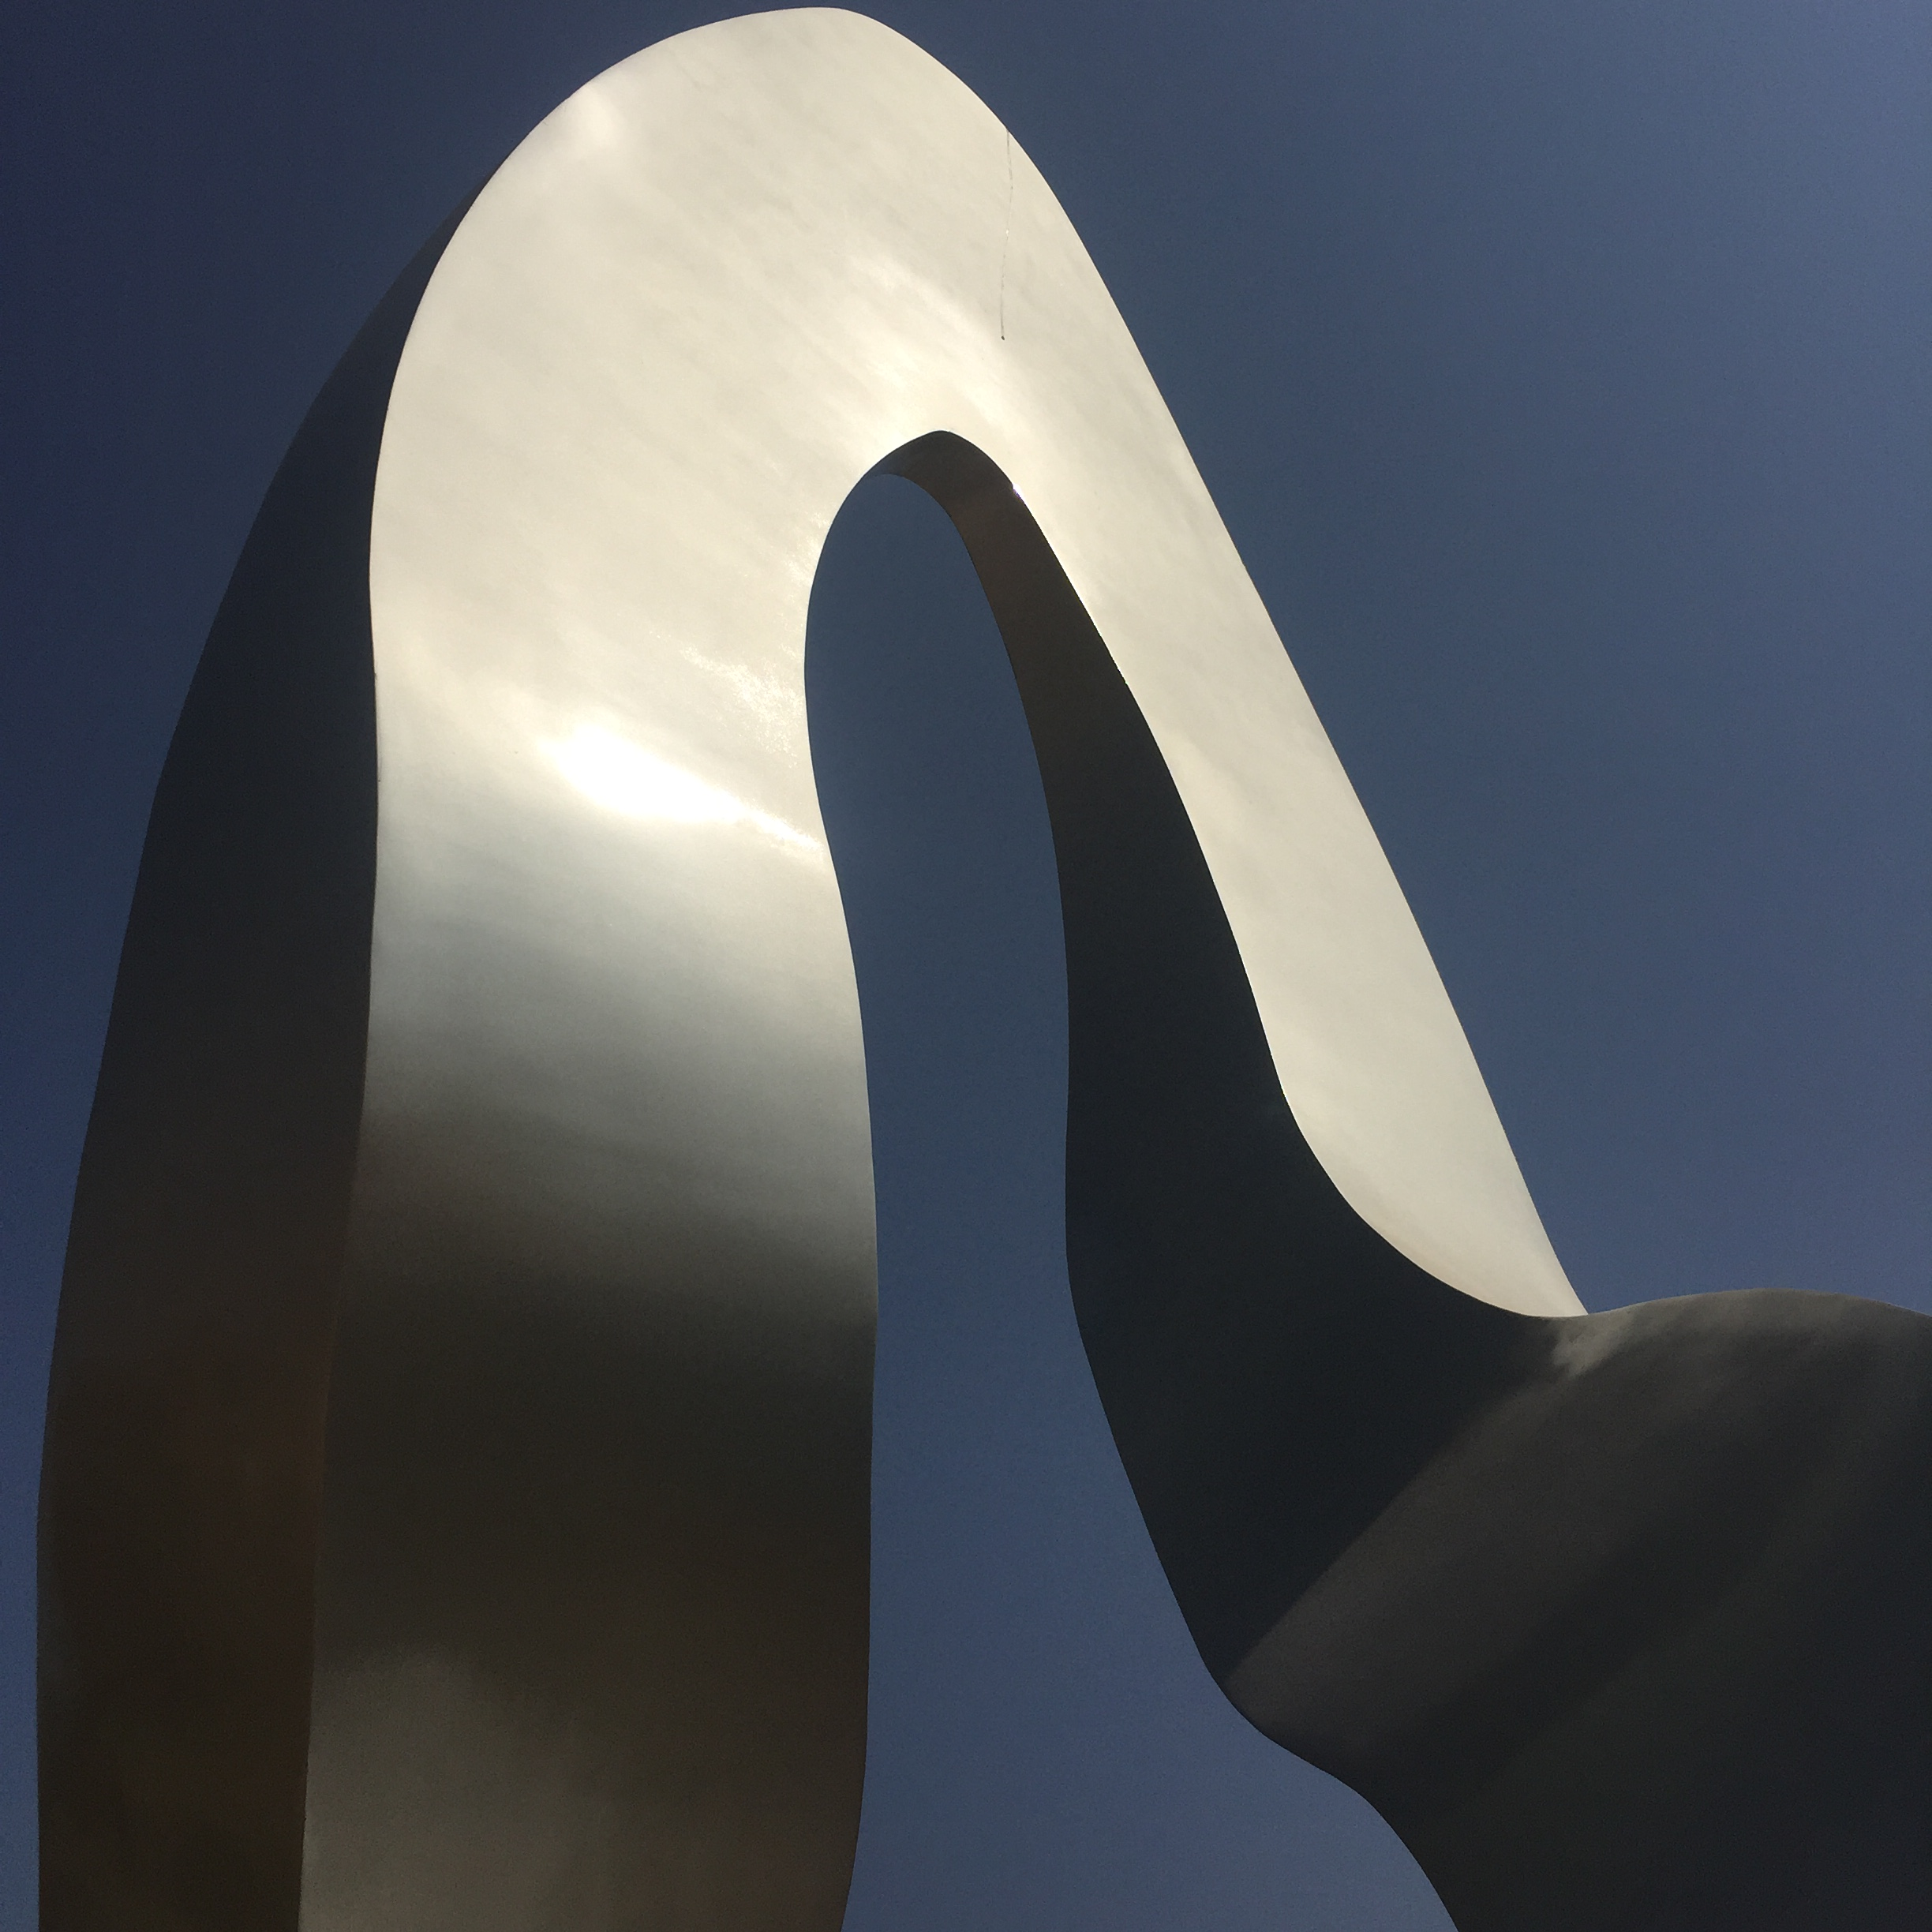 large scale steel sculpture by tarik currmbhoy detail image